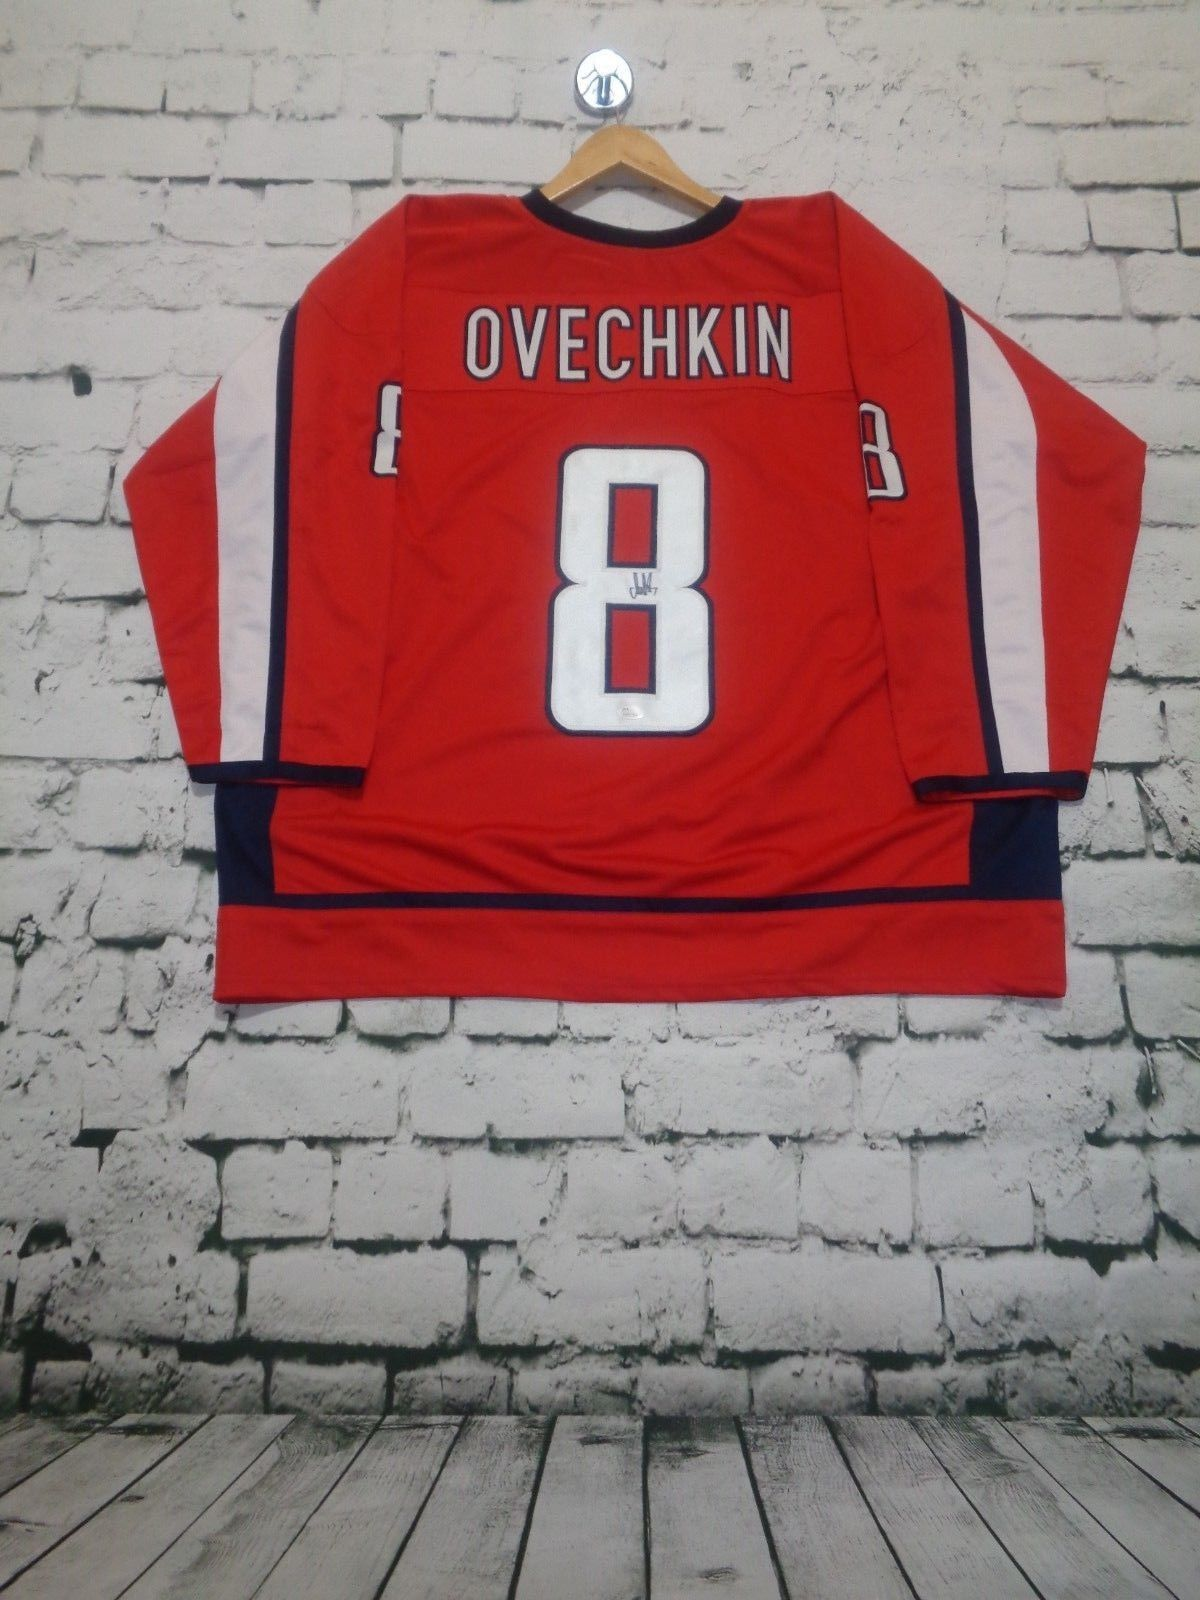 e7a1c464787 S l1600. S l1600. Previous. ALEXANDER OVECHKIN autographed signed Capitals  red Jersey JSA witness